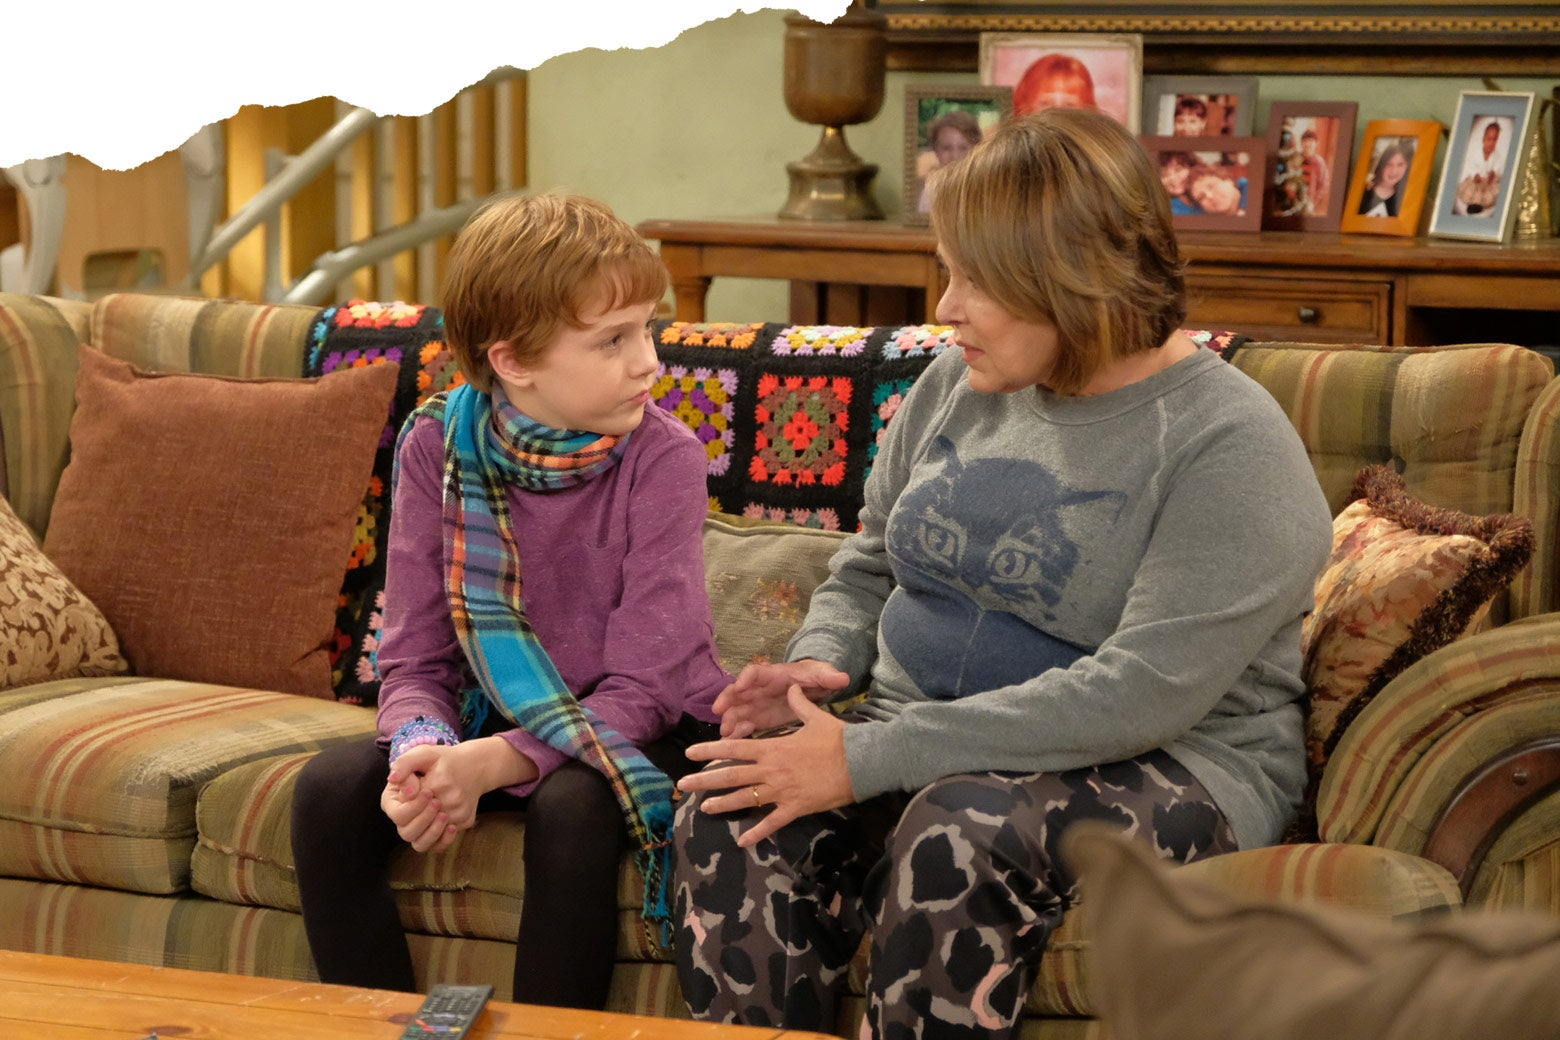 Mark and Roseanne sit on the couch in a scene from the TV show Roseanne.